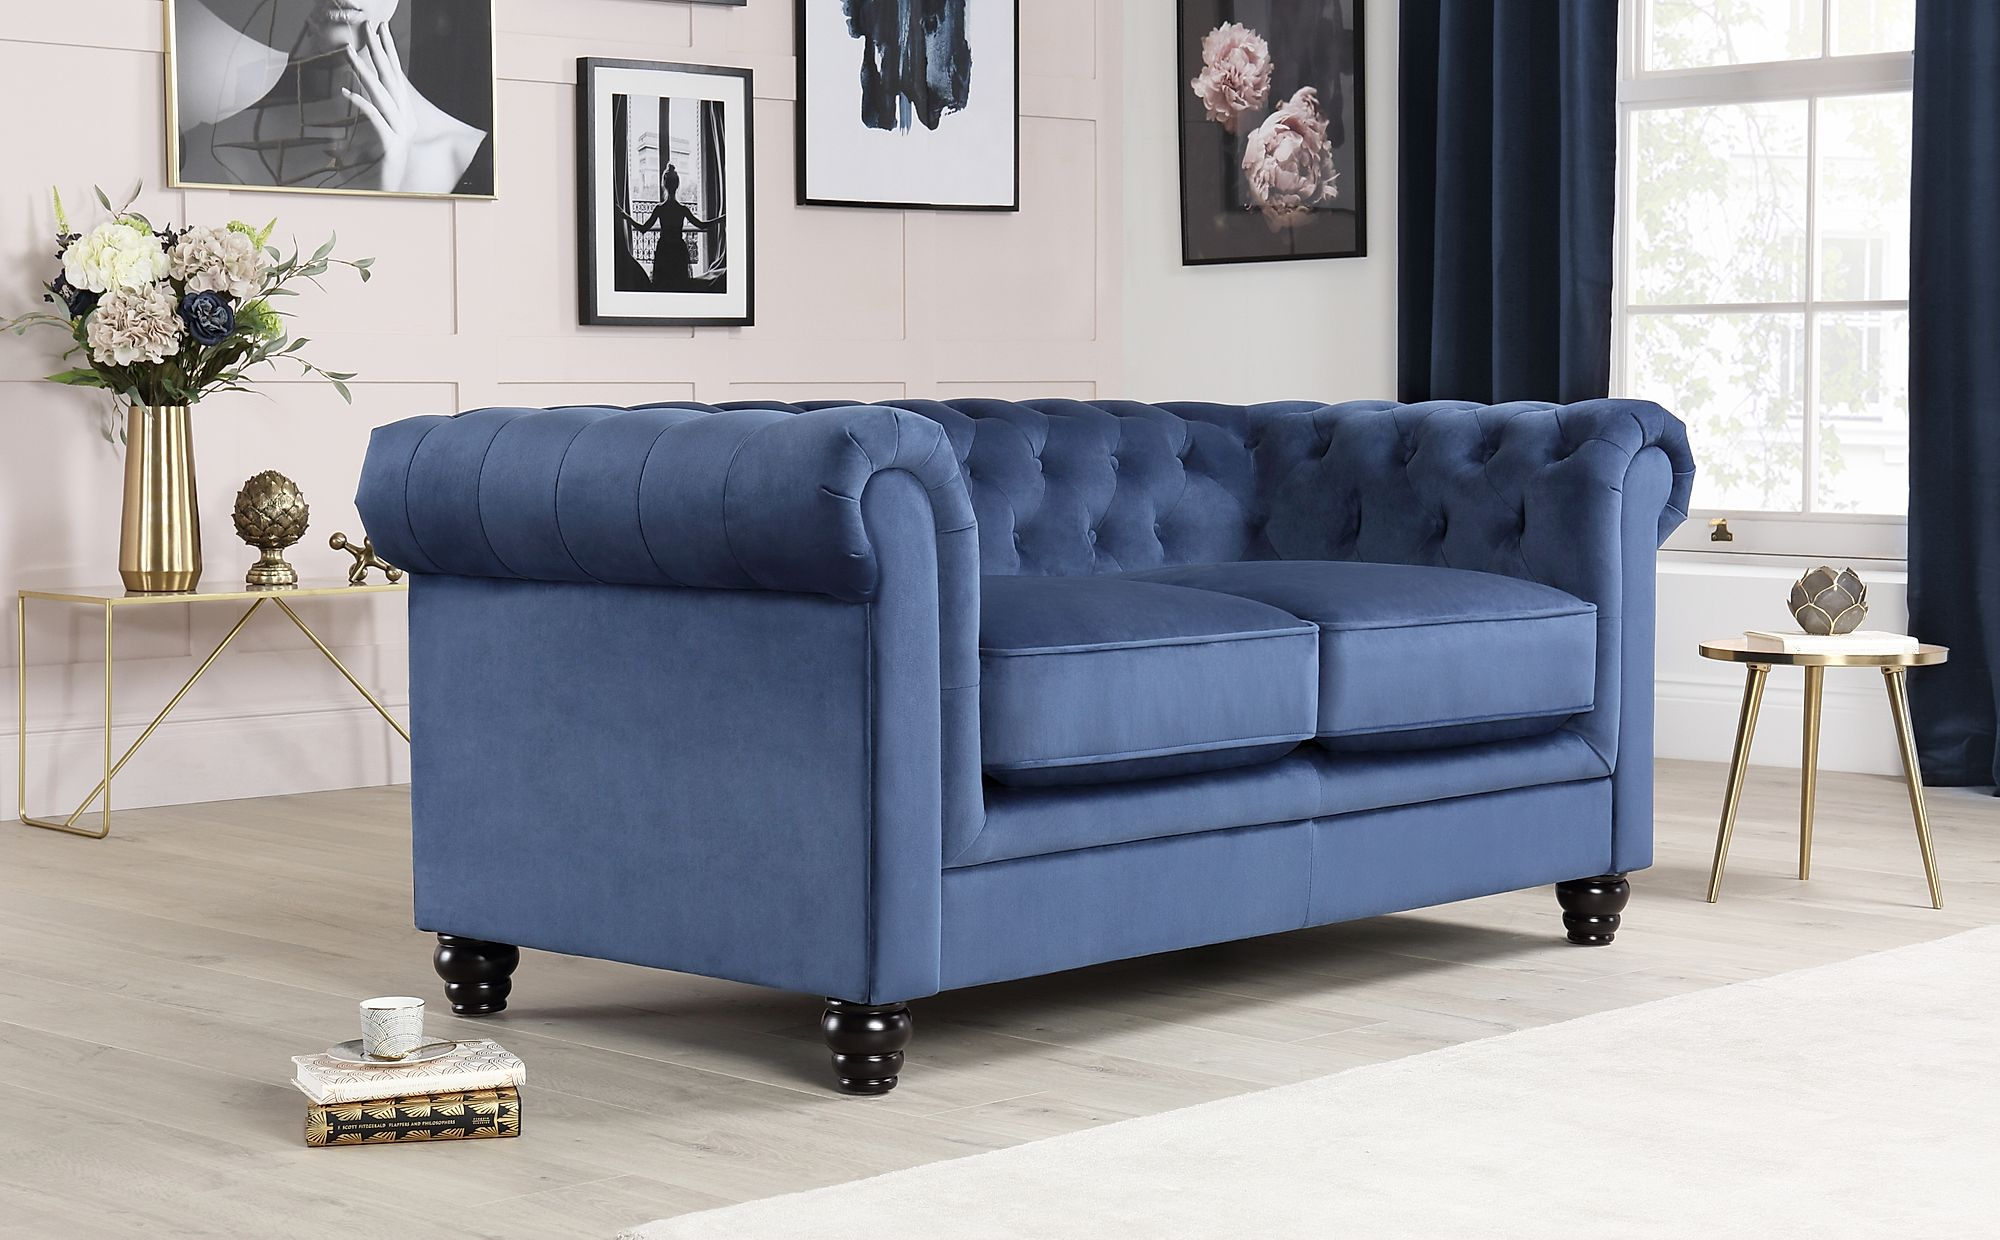 Hampton Blue Velvet Chesterfield Sofa 2 Seater Furniture